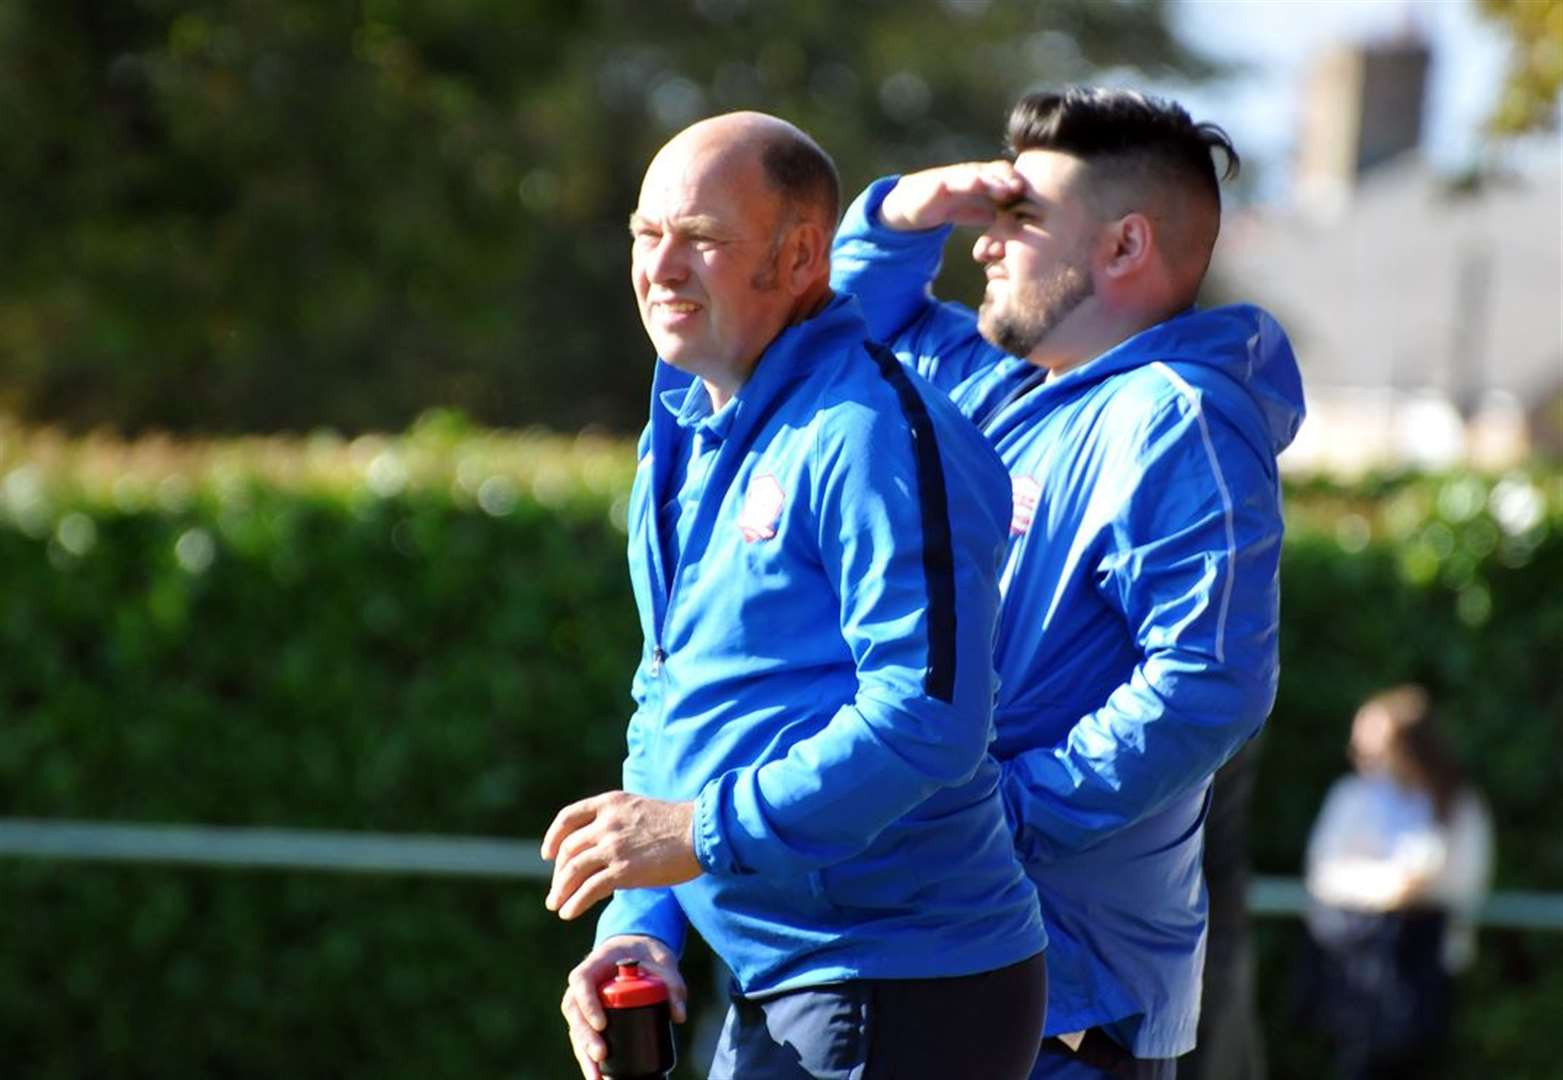 Wakes aiming to close the gap in Rushden trip